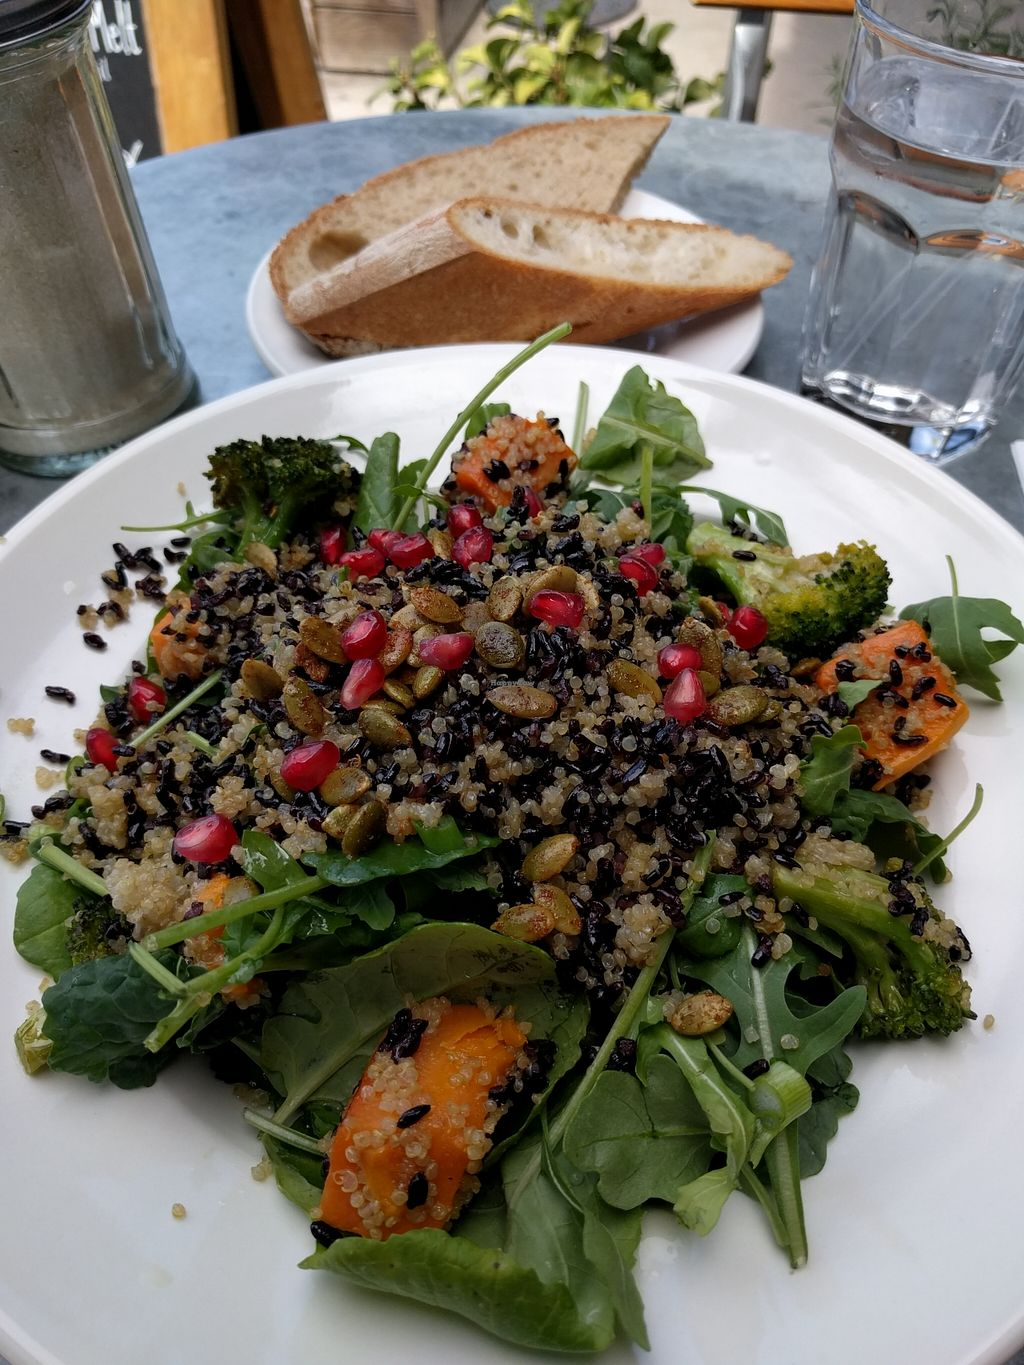 "Photo of Le Pain Quotidien - Robertson Blvd  by <a href=""/members/profile/Sonja%20and%20Dirk"">Sonja and Dirk</a> <br/>warm winter grain bowl <br/> March 25, 2016  - <a href='/contact/abuse/image/33309/141310'>Report</a>"